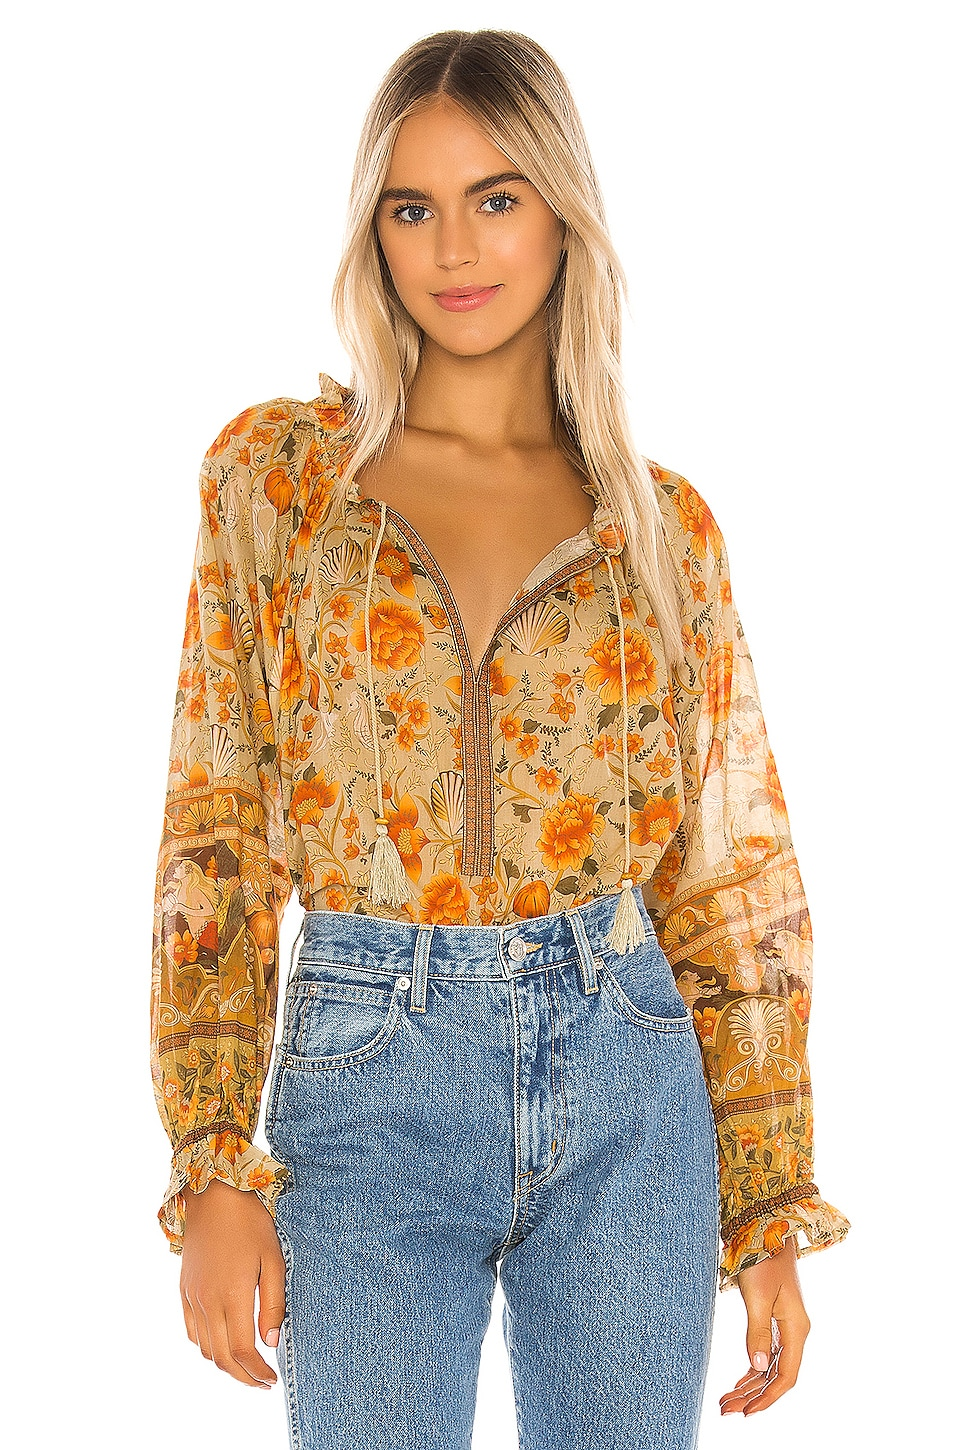 Spell & The Gypsy Collective Seashell Blouse in Sand